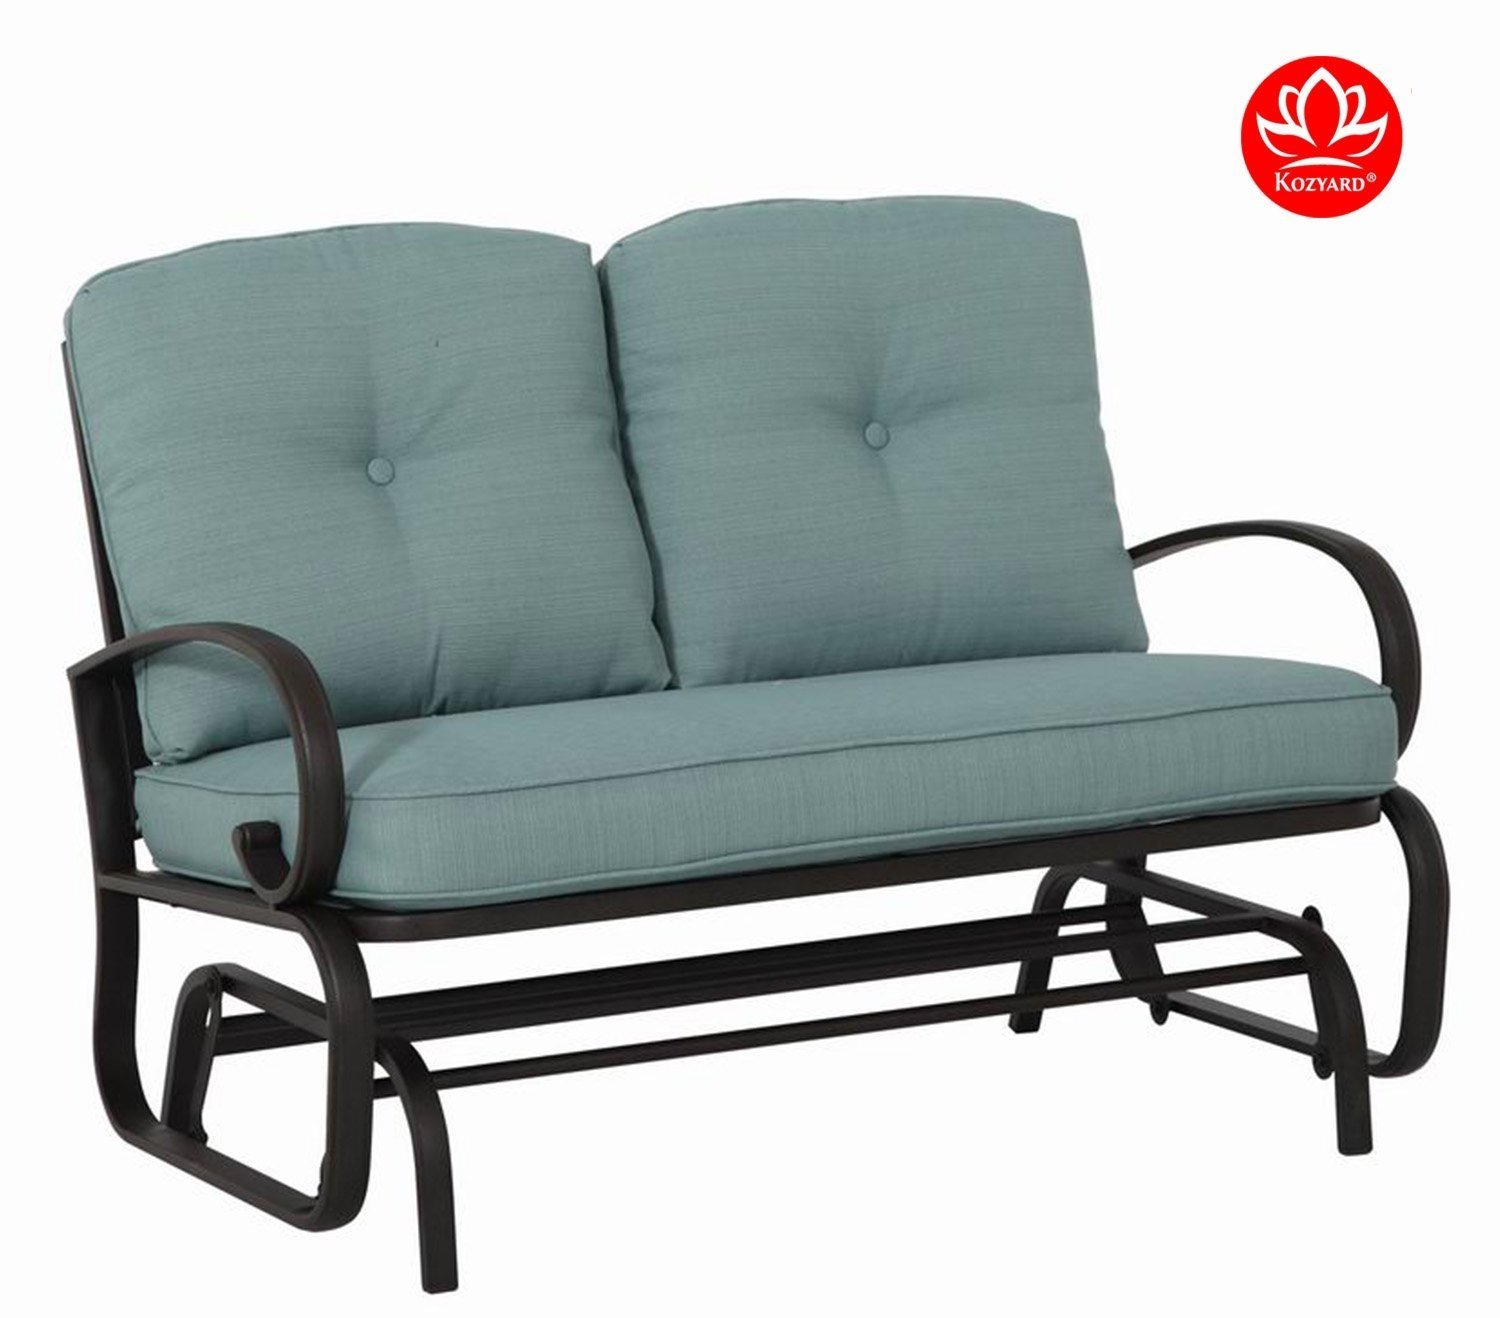 Featured Image of Rocking Love Seats Glider Swing Benches With Sturdy Frame